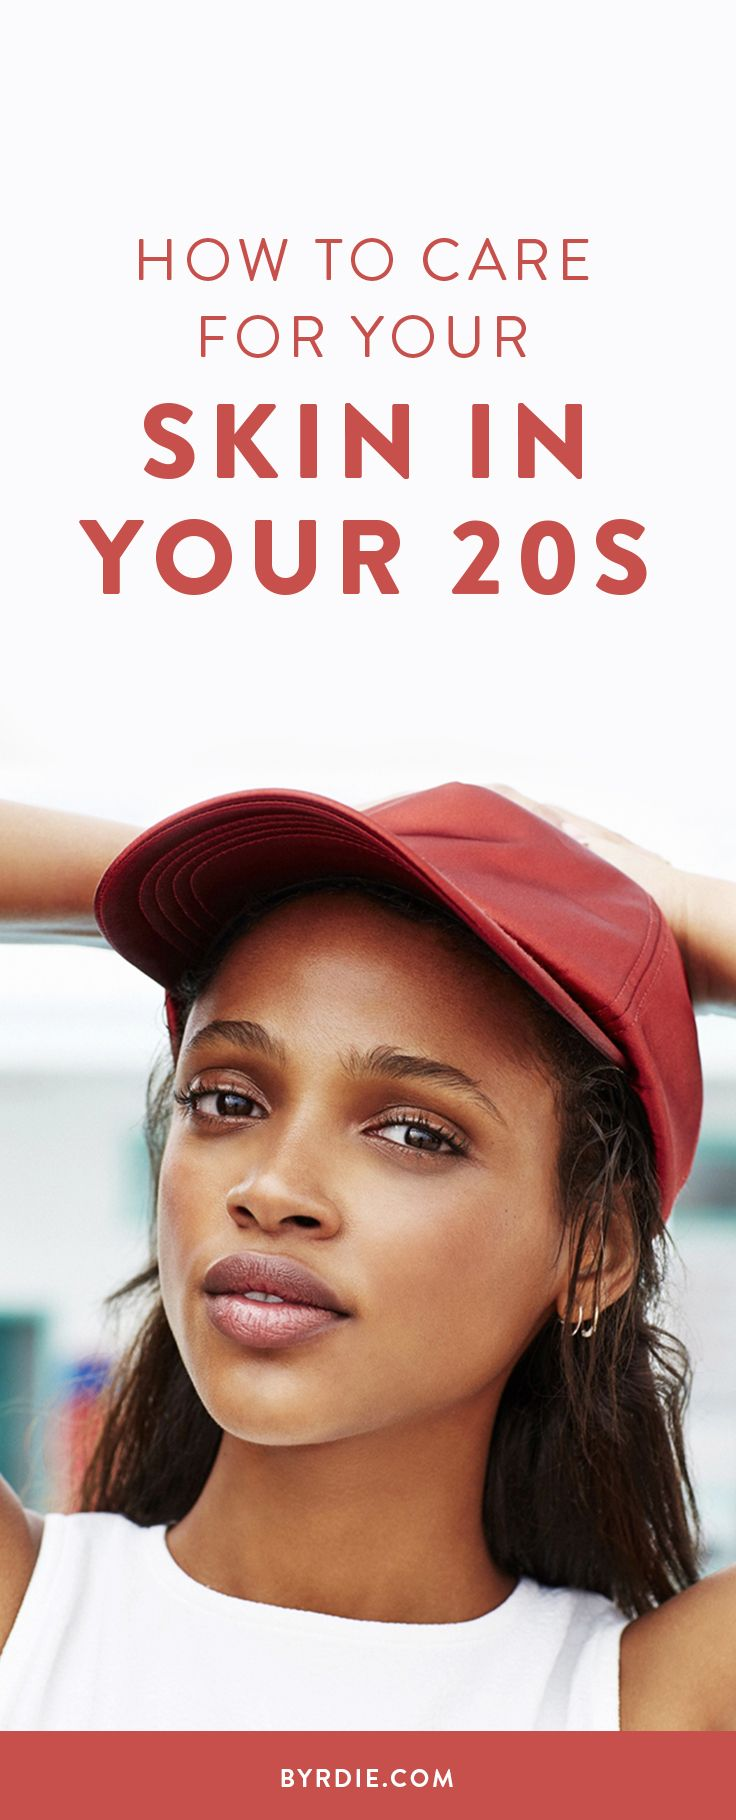 This Is Why Your Skin Is Going Nuts In Your 20s Skin Care 20s Skin Care Recipes Natural Skin Care